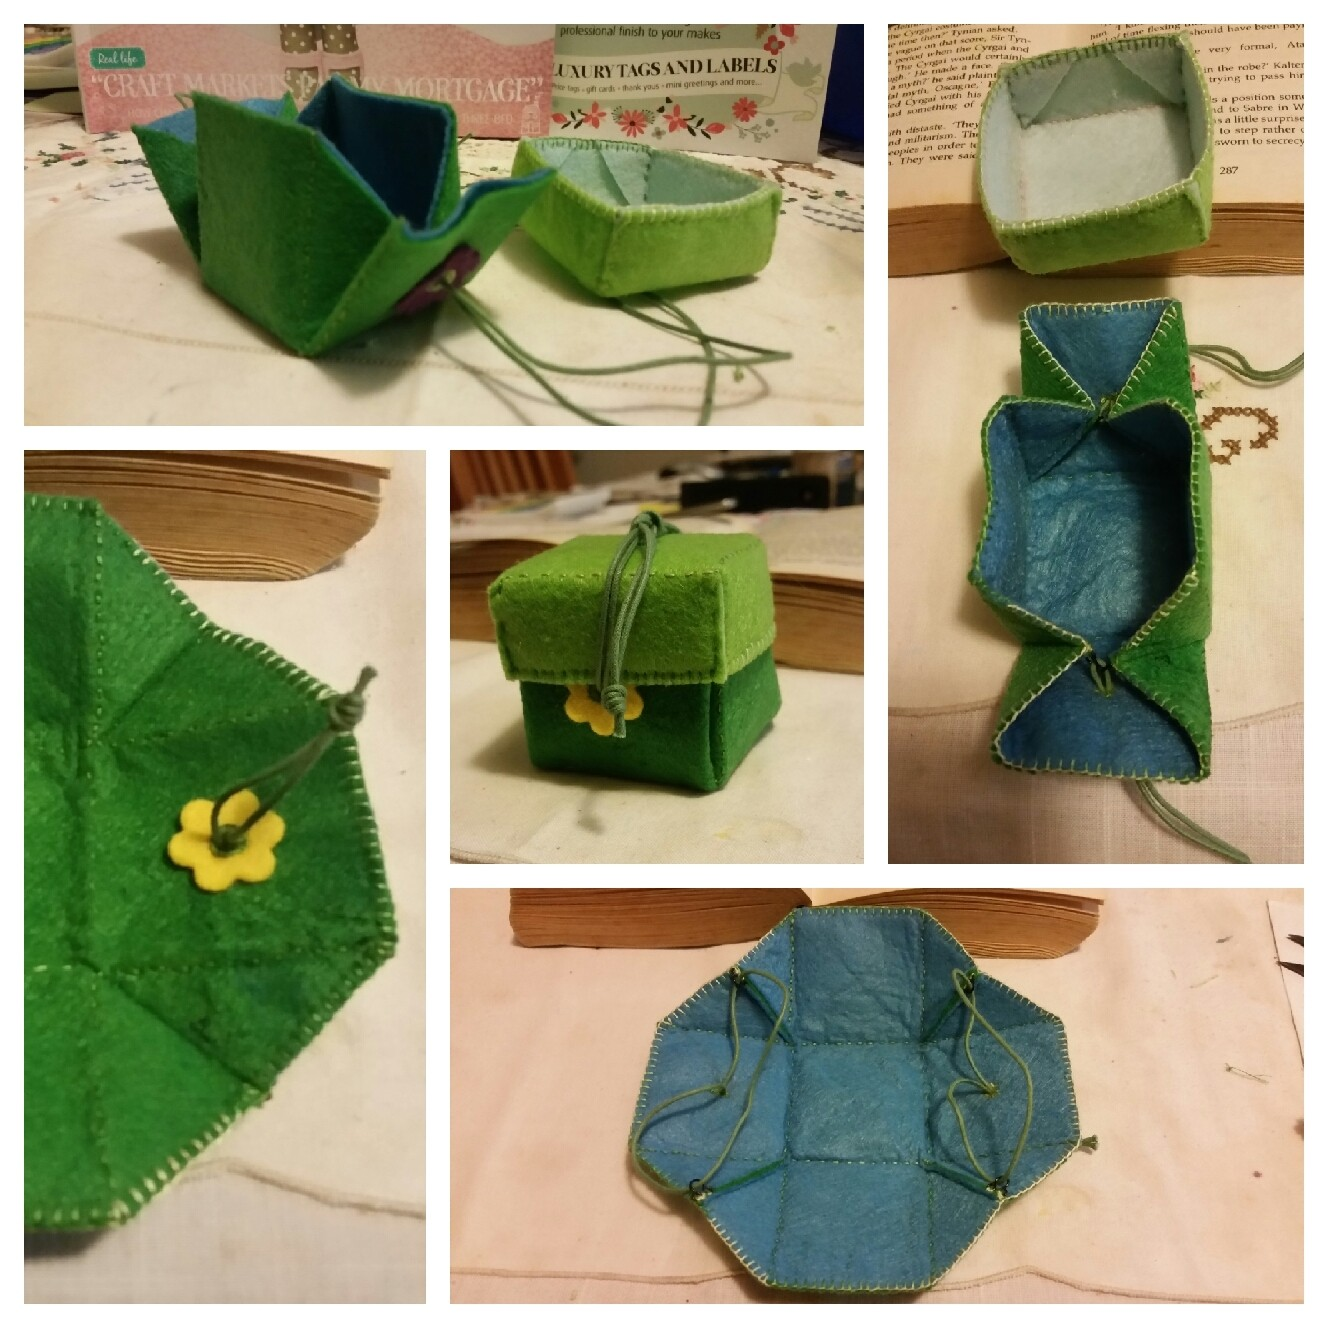 Exploding box made in blue and green felt.